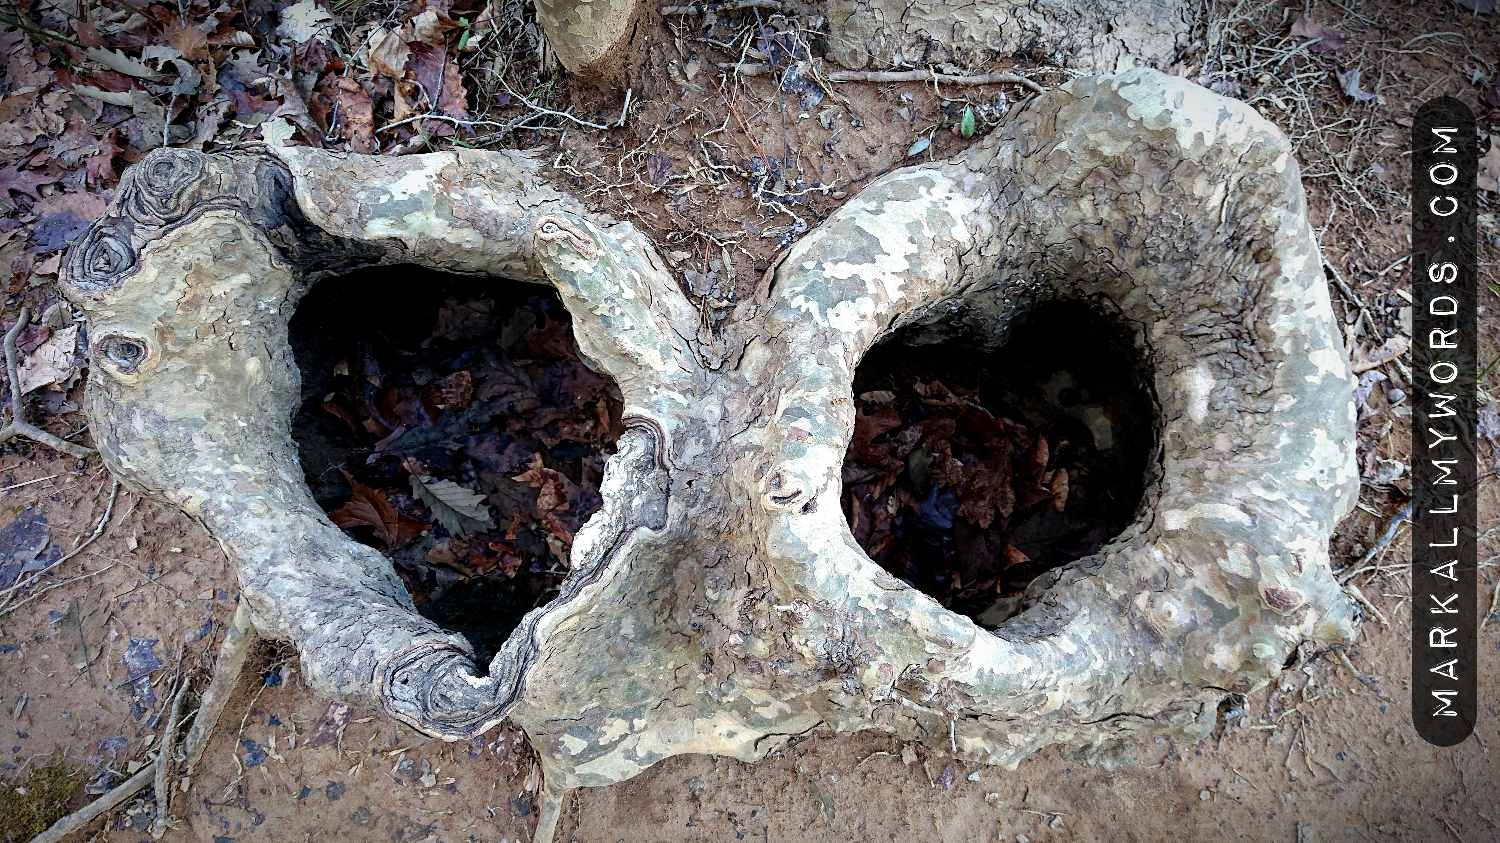 Cavities in American sycamore roots